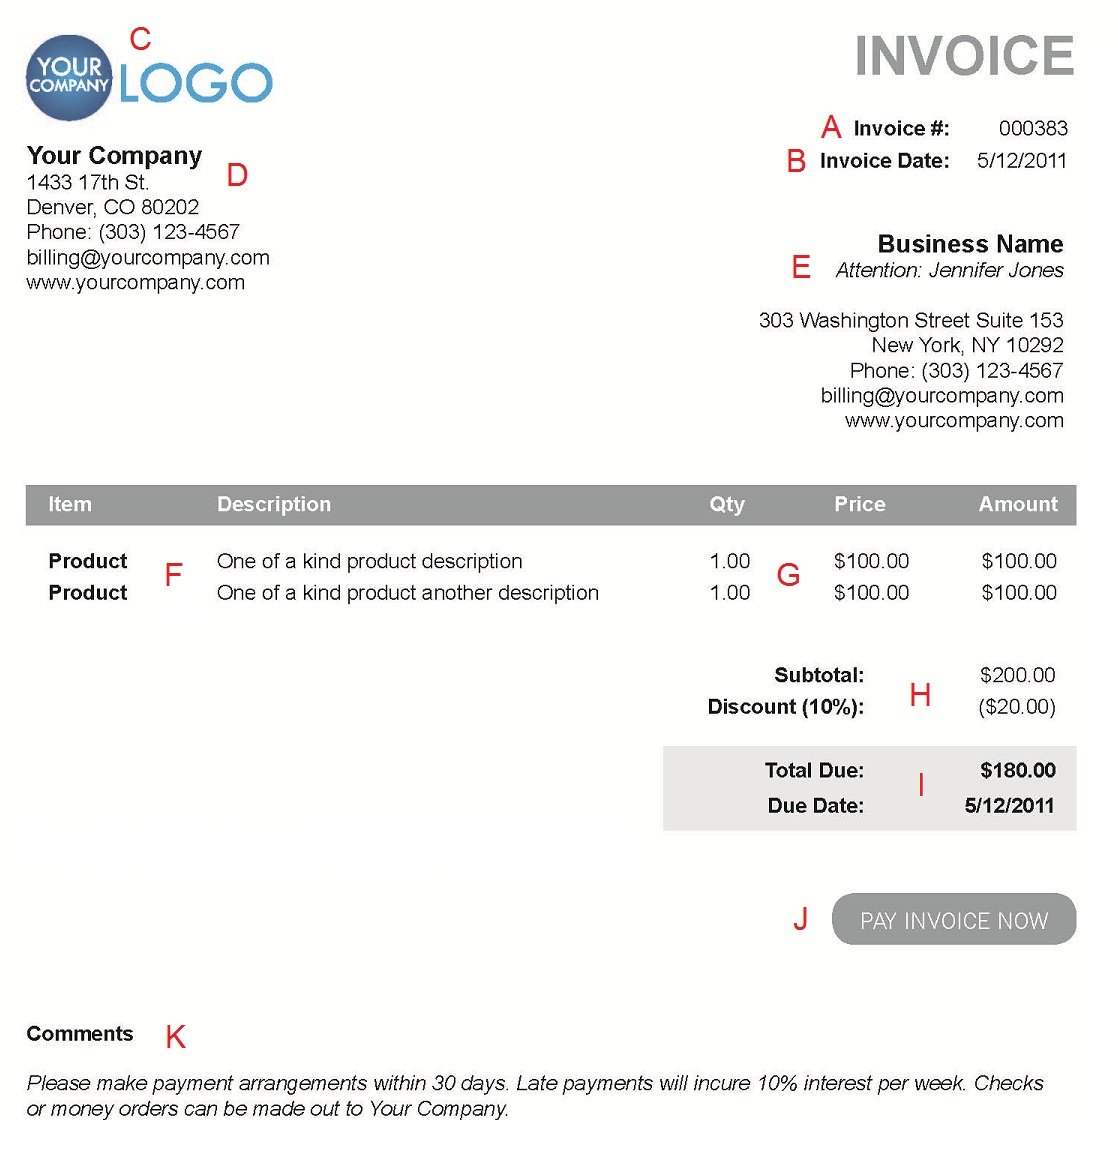 Totallocalus  Pretty The  Different Sections Of An Electronic Payment Invoice With Outstanding A  With Comely Invoice Pdf Template Also Jeep Invoice Price In Addition Purchase Order Invoice And Web Hosting Invoice As Well As Template For An Invoice Additionally Create A Free Invoice From Paysimplecom With Totallocalus  Outstanding The  Different Sections Of An Electronic Payment Invoice With Comely A  And Pretty Invoice Pdf Template Also Jeep Invoice Price In Addition Purchase Order Invoice From Paysimplecom